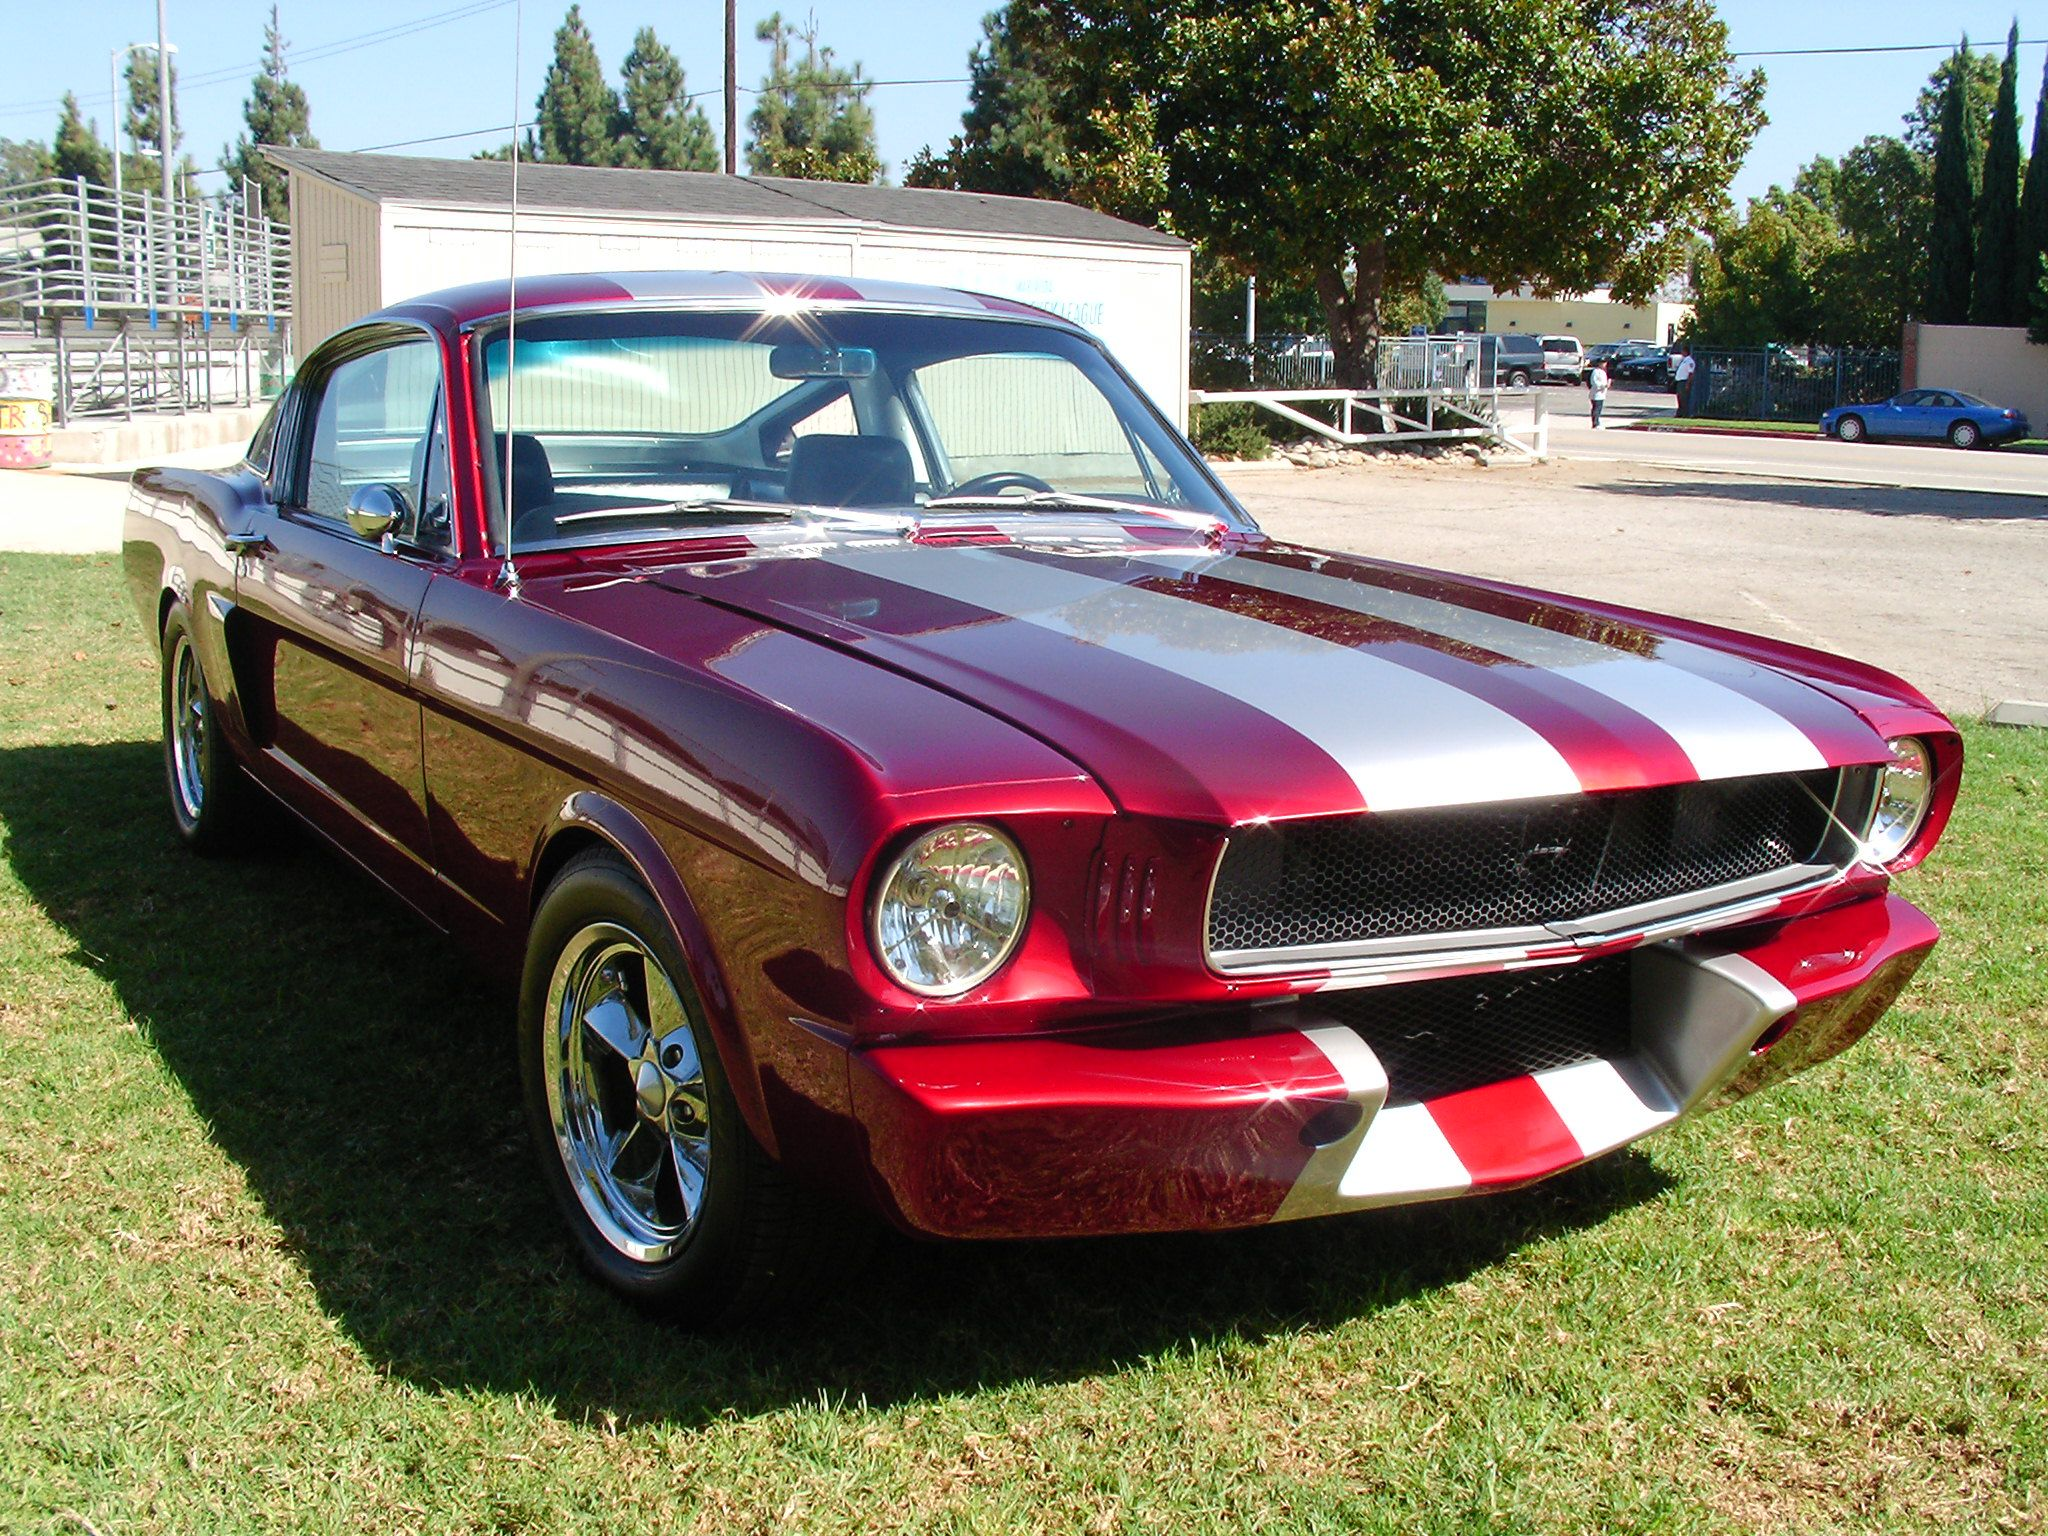 Top 10 Favorite Colors Metallic Red Silver Stripes 1965 Mustang Wishful Thinking